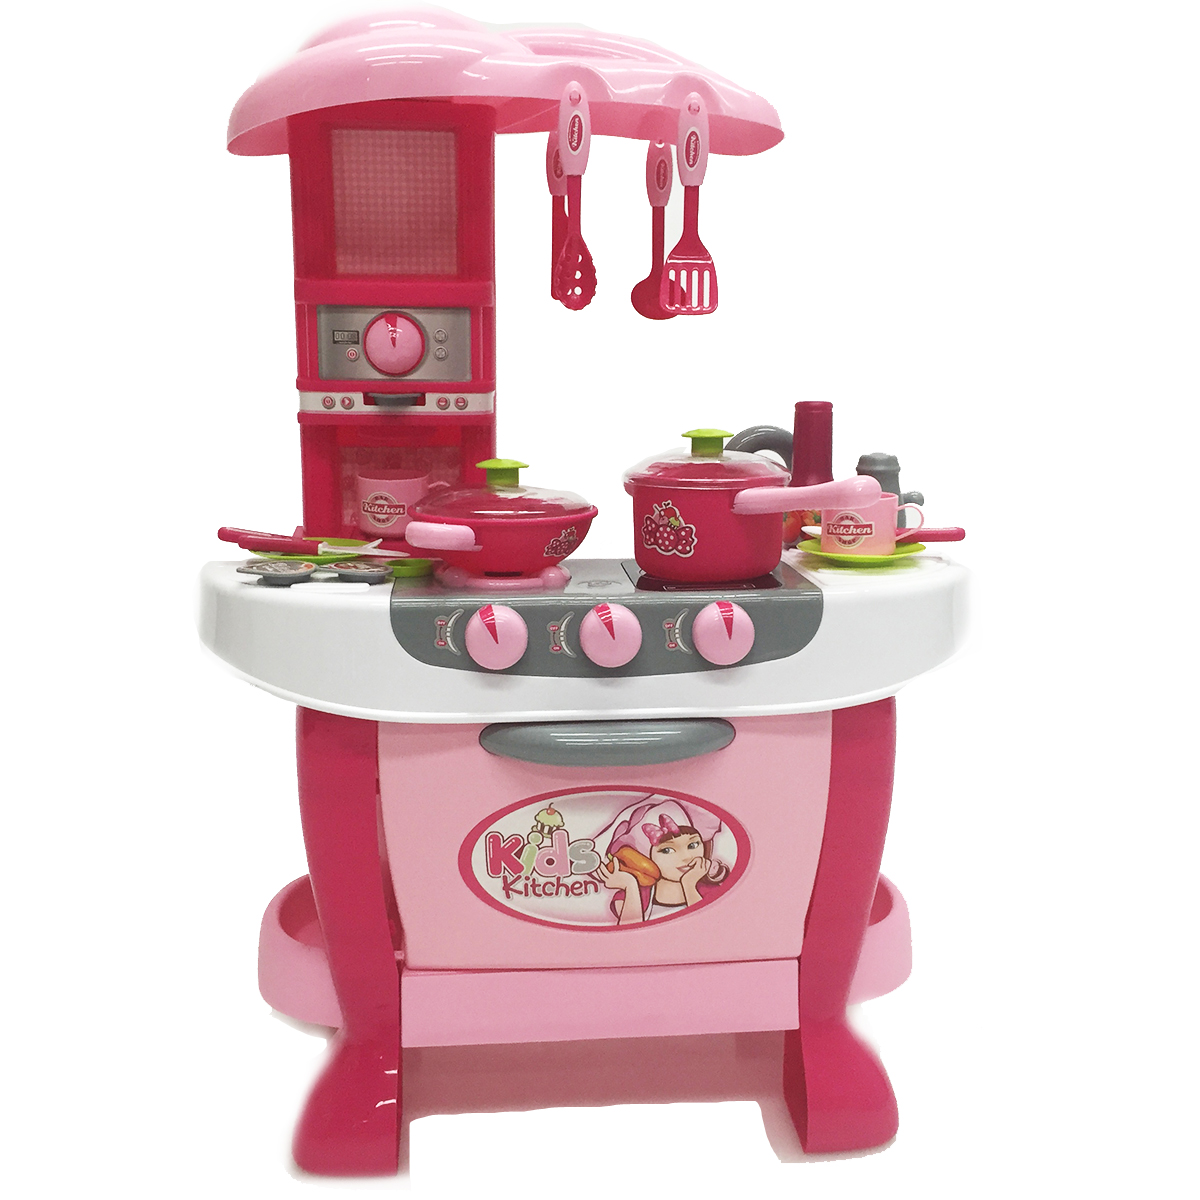 Kitchen Counters On Toys: Kitchen Playset Toy 31 PC Stove Play Set Chef Utensil Pots